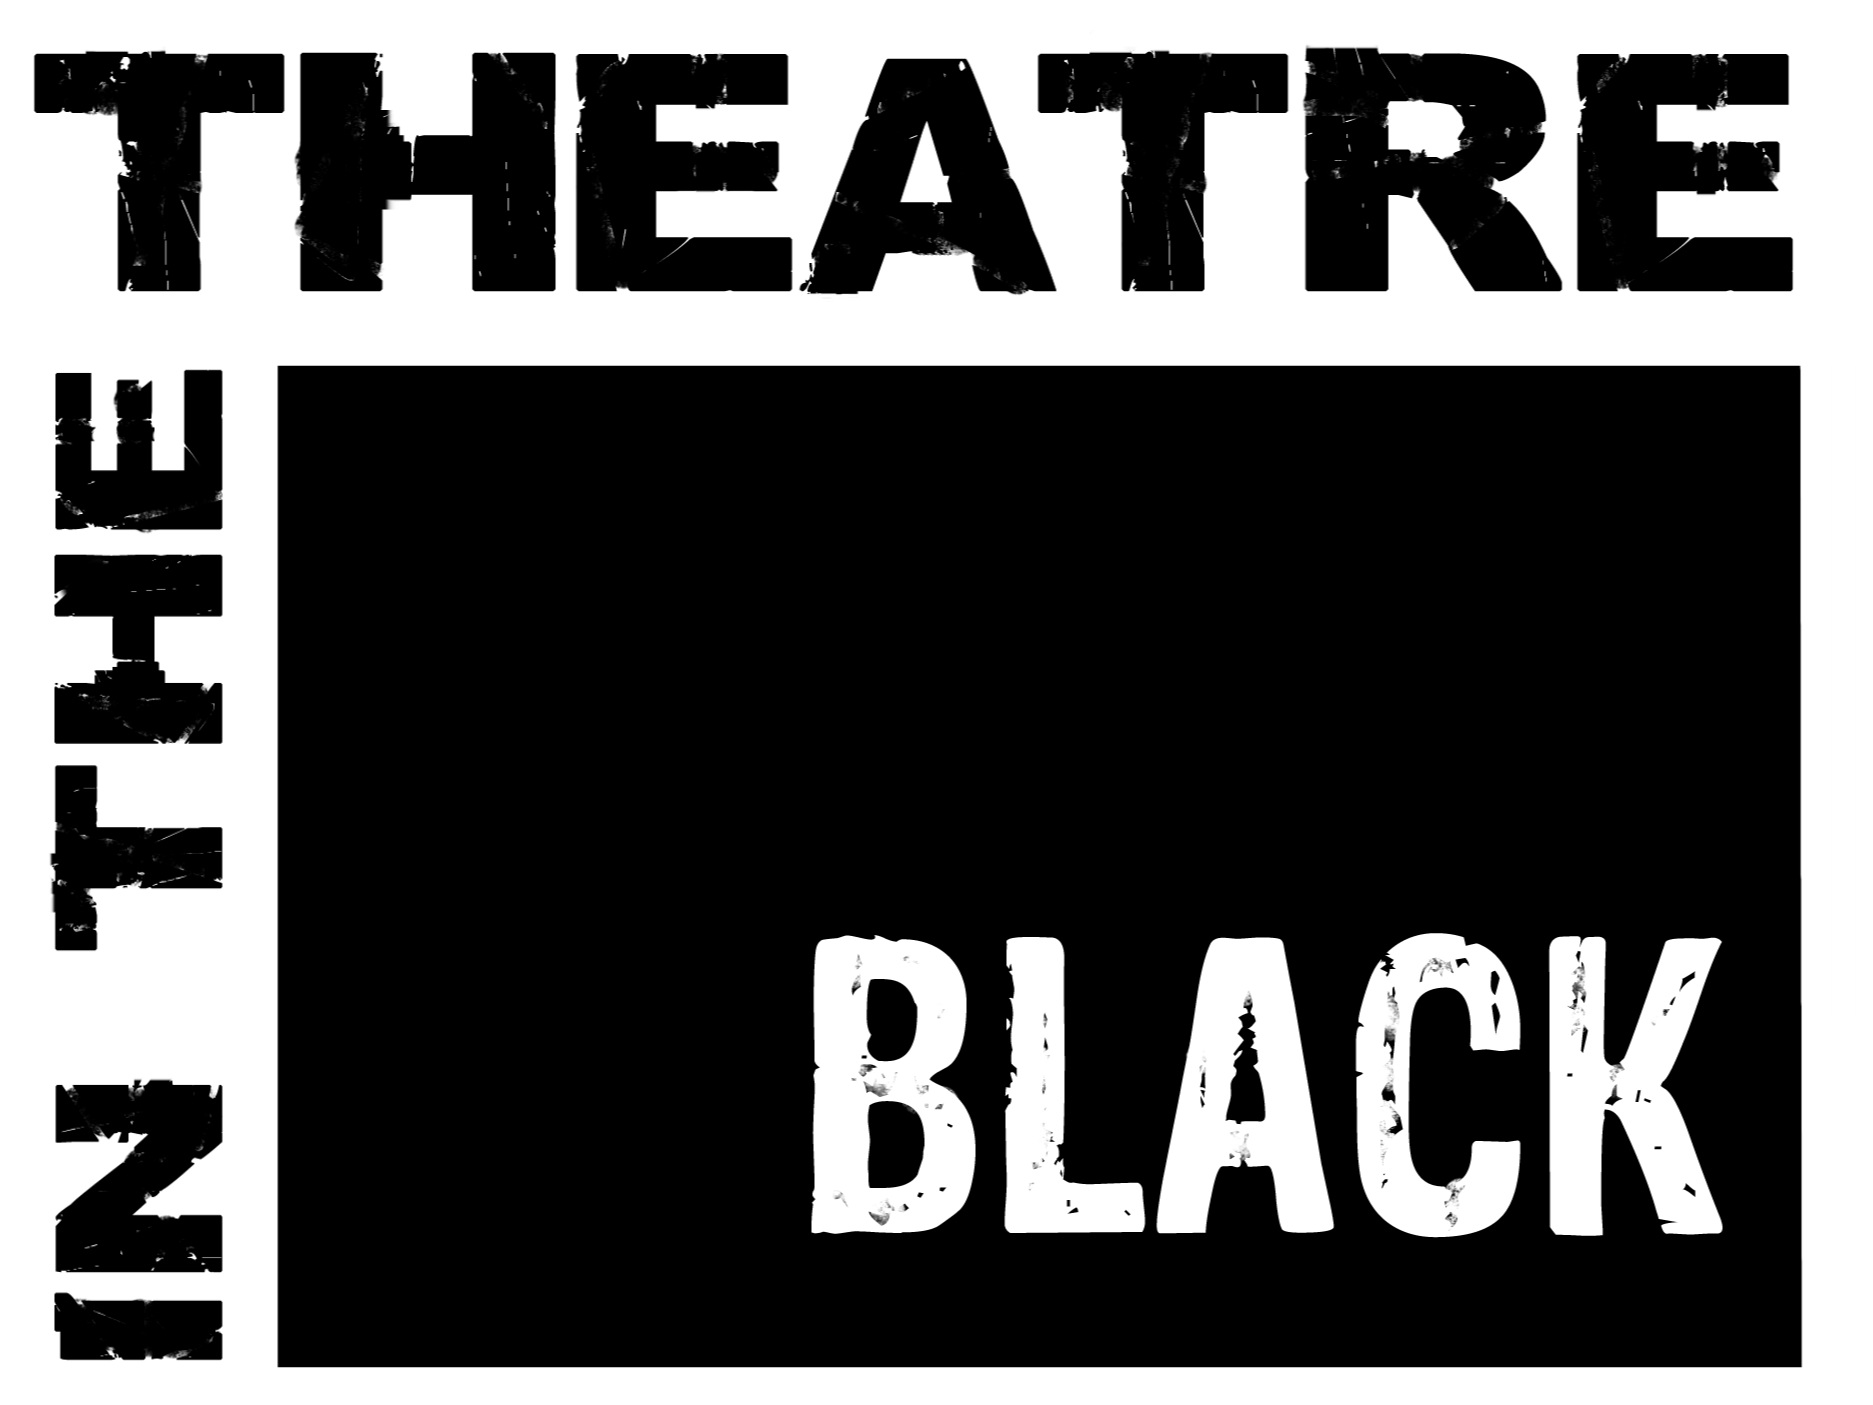 Theatre in the Black is the means by which a group of professional artists are allowed to produce small, usually unknown, sometimes original, often visceral, occasionally dystopian, always compelling, and never mediocre works of theatre art. Theatre enhances our understanding of the human condition, it teaches empathy and it allows us to learn from experiences we have not lived. When theatre thrives everyone profits. -